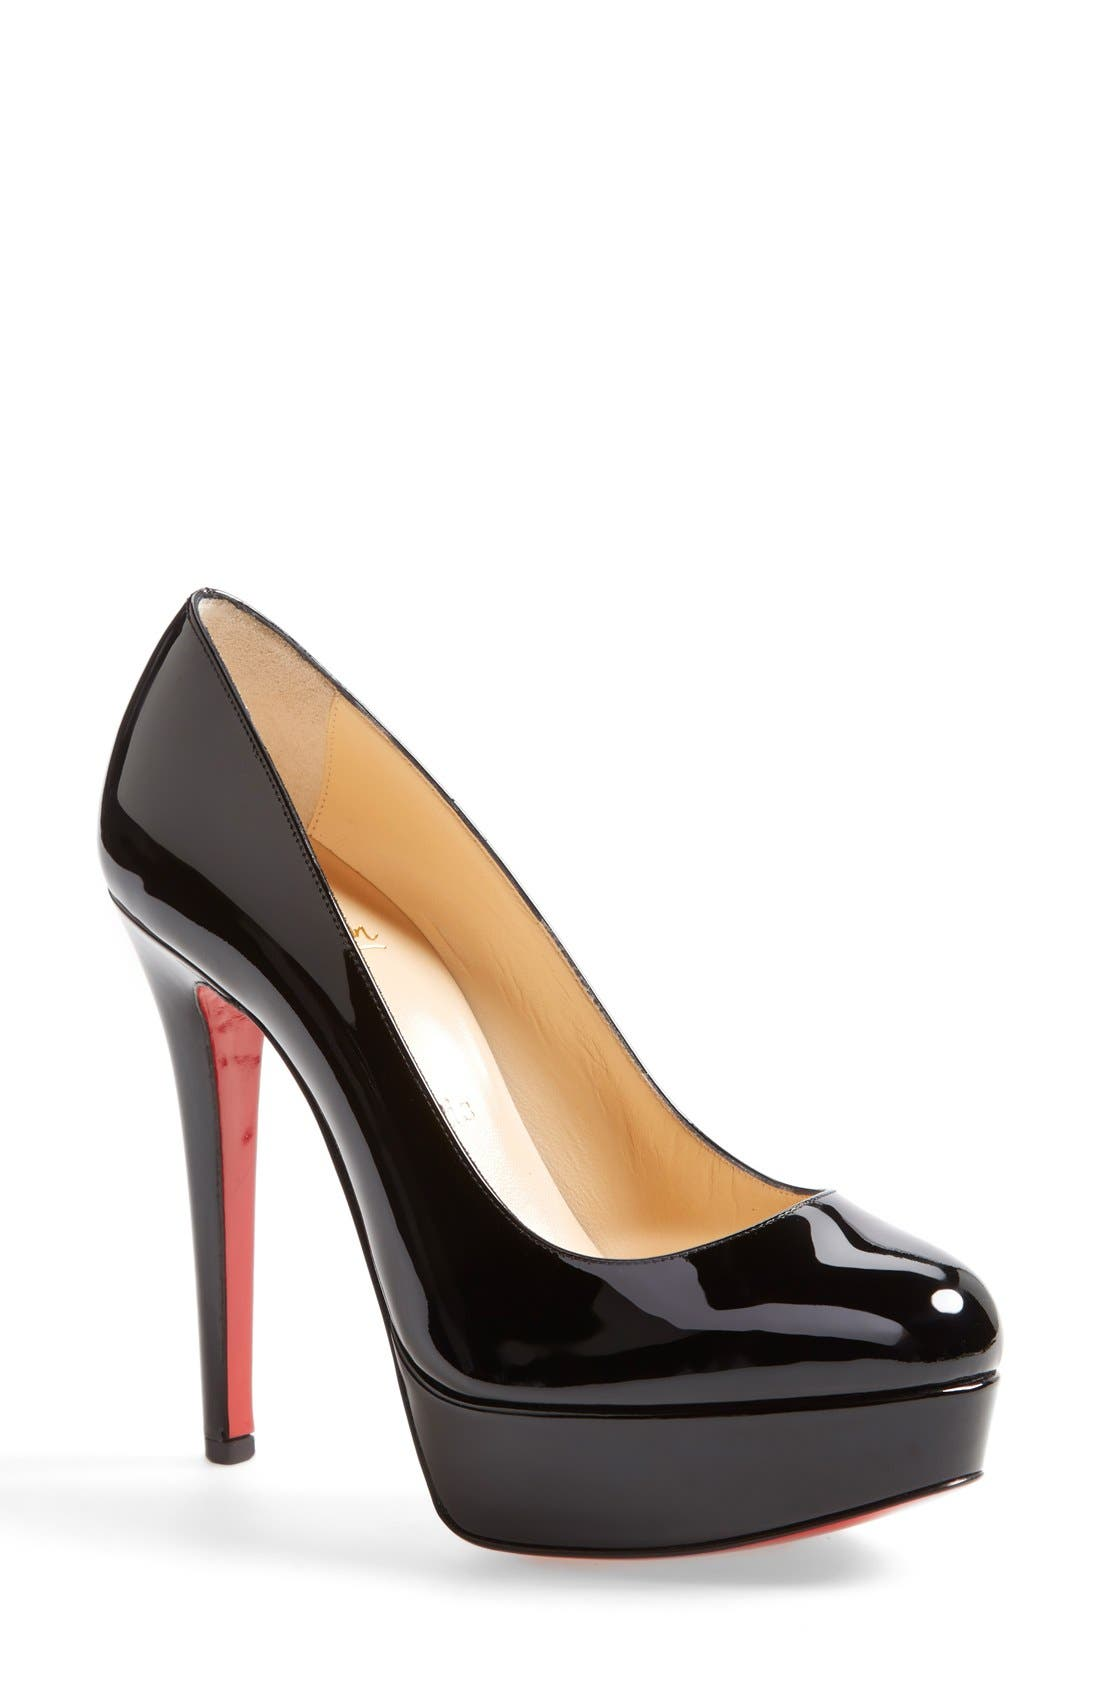 Alternate Image 1 Selected - Christian Louboutin Bianca Platform Pump